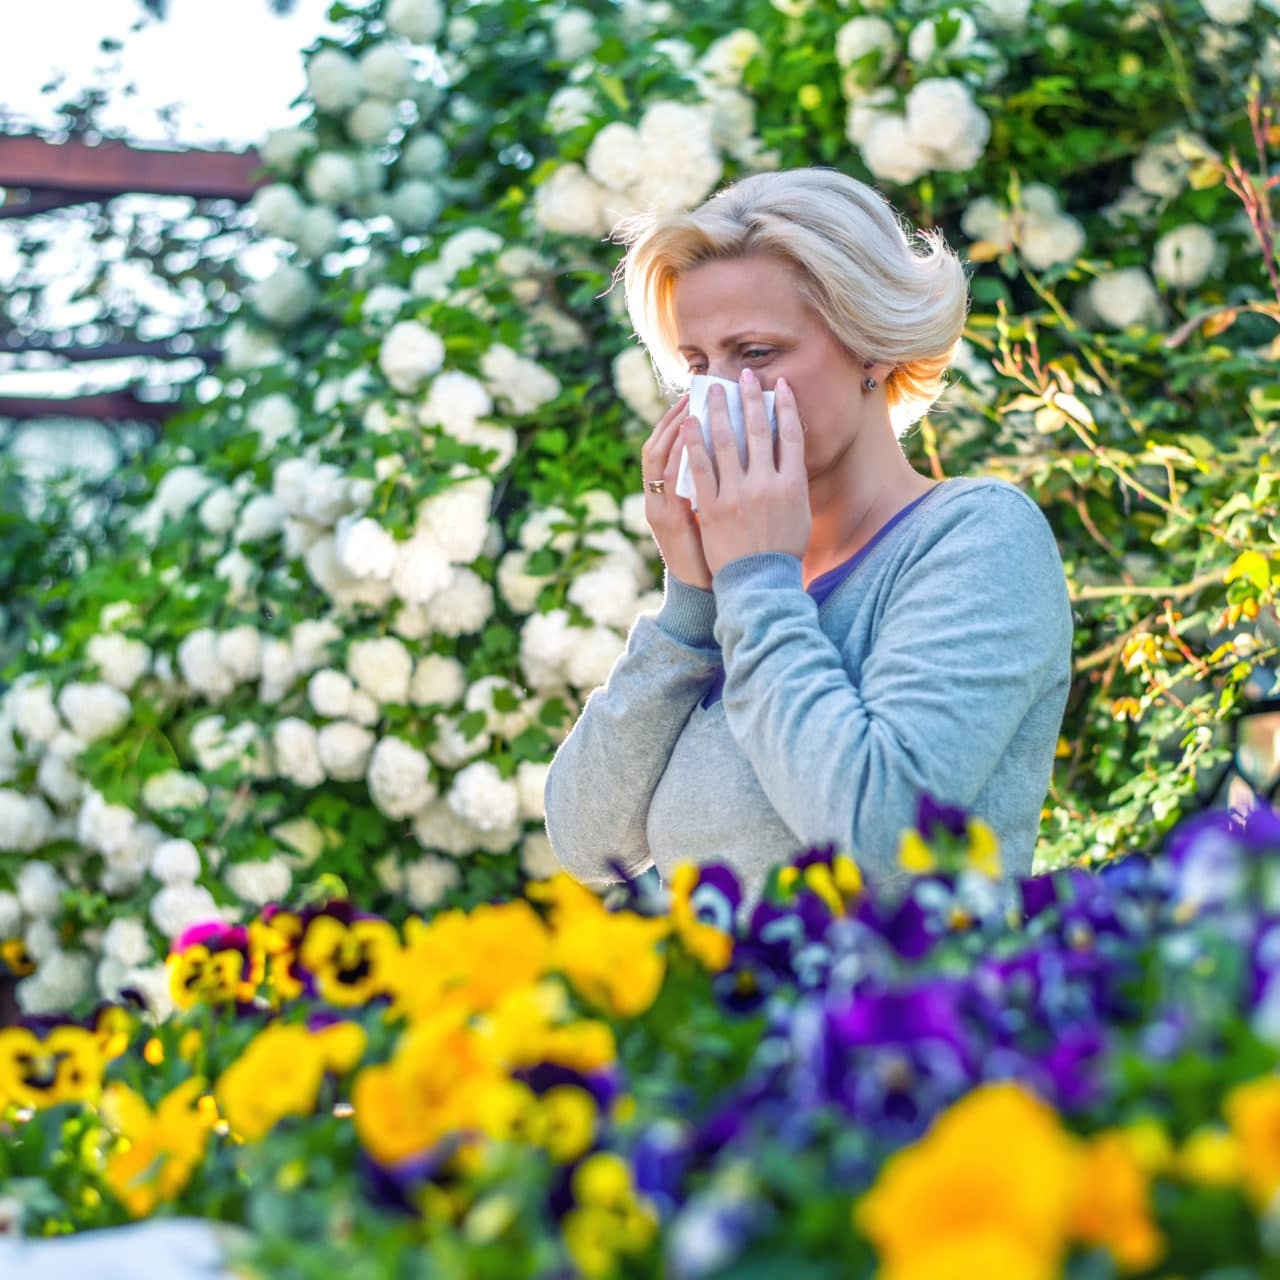 Woman covering sneeze in garden